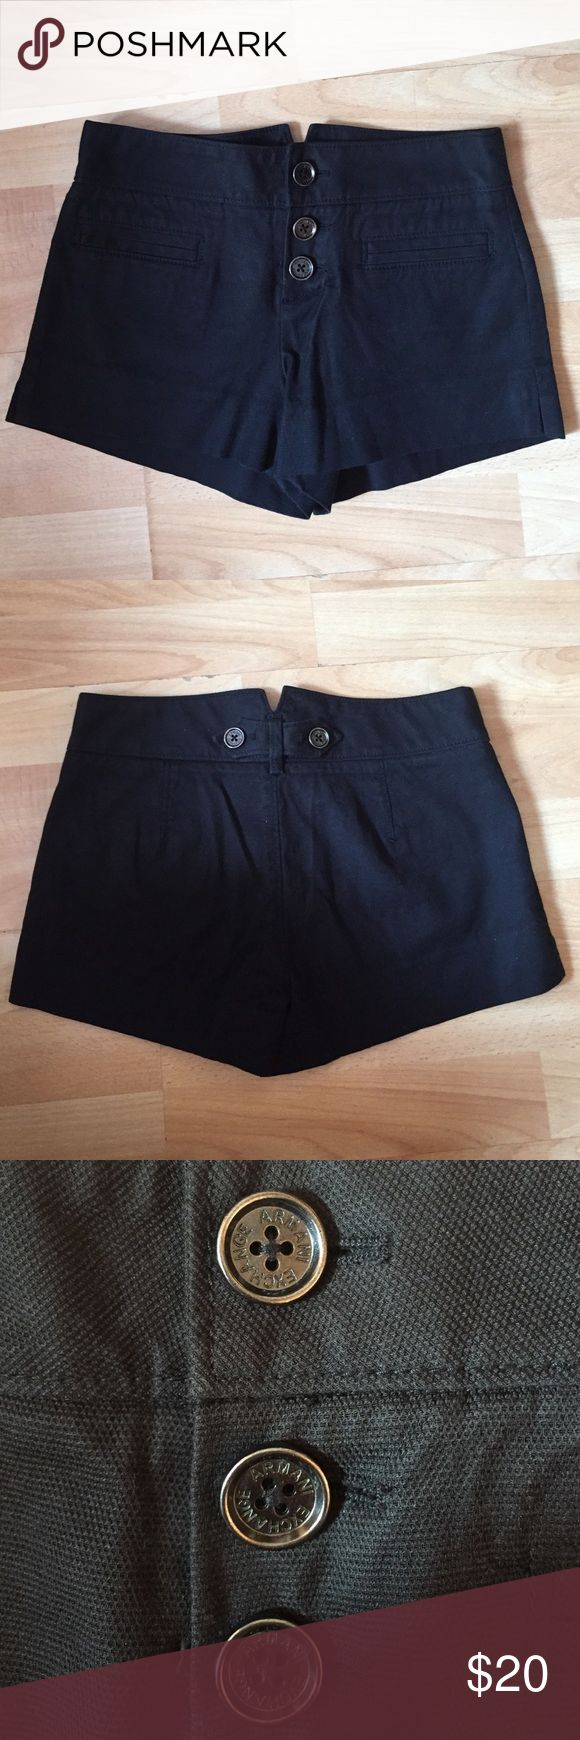 Armani Exchange Black High Waisted Shorts High waisted black fitted fabric shorts with silver buttons. 1 inch inseam. In good condition, WORN TWICE. Armani Exchange Shorts